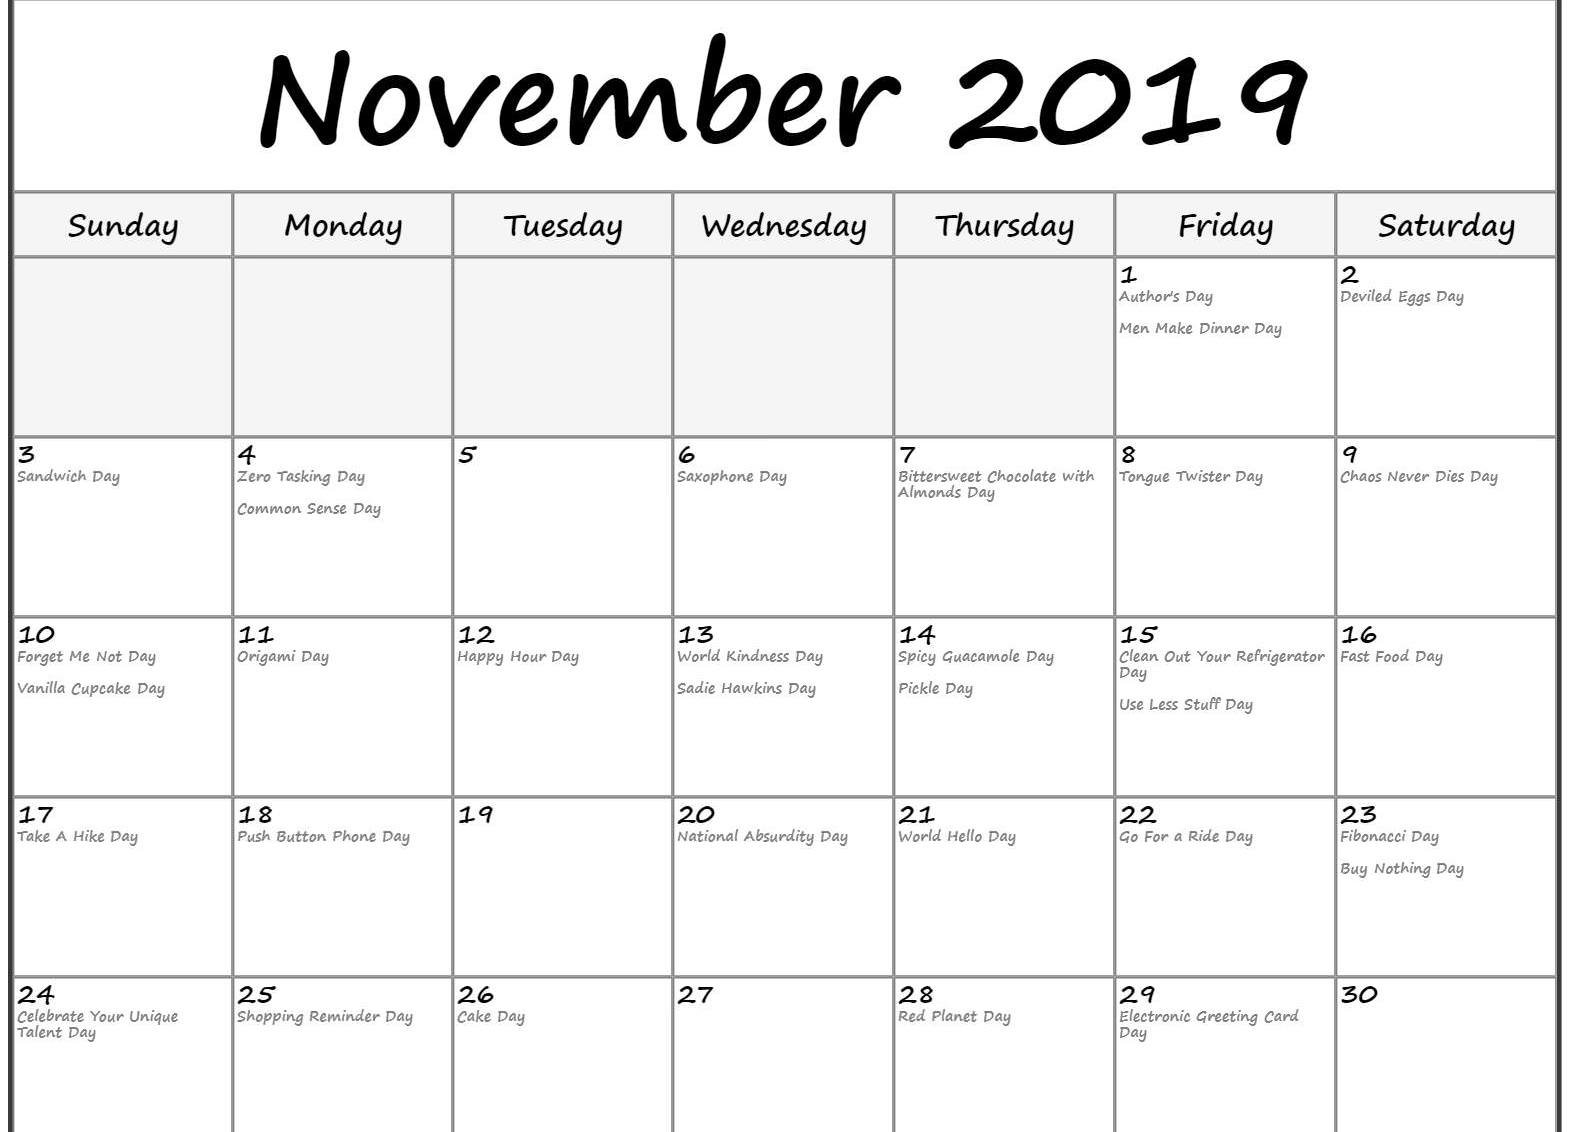 Holidays Calendar for November 2019